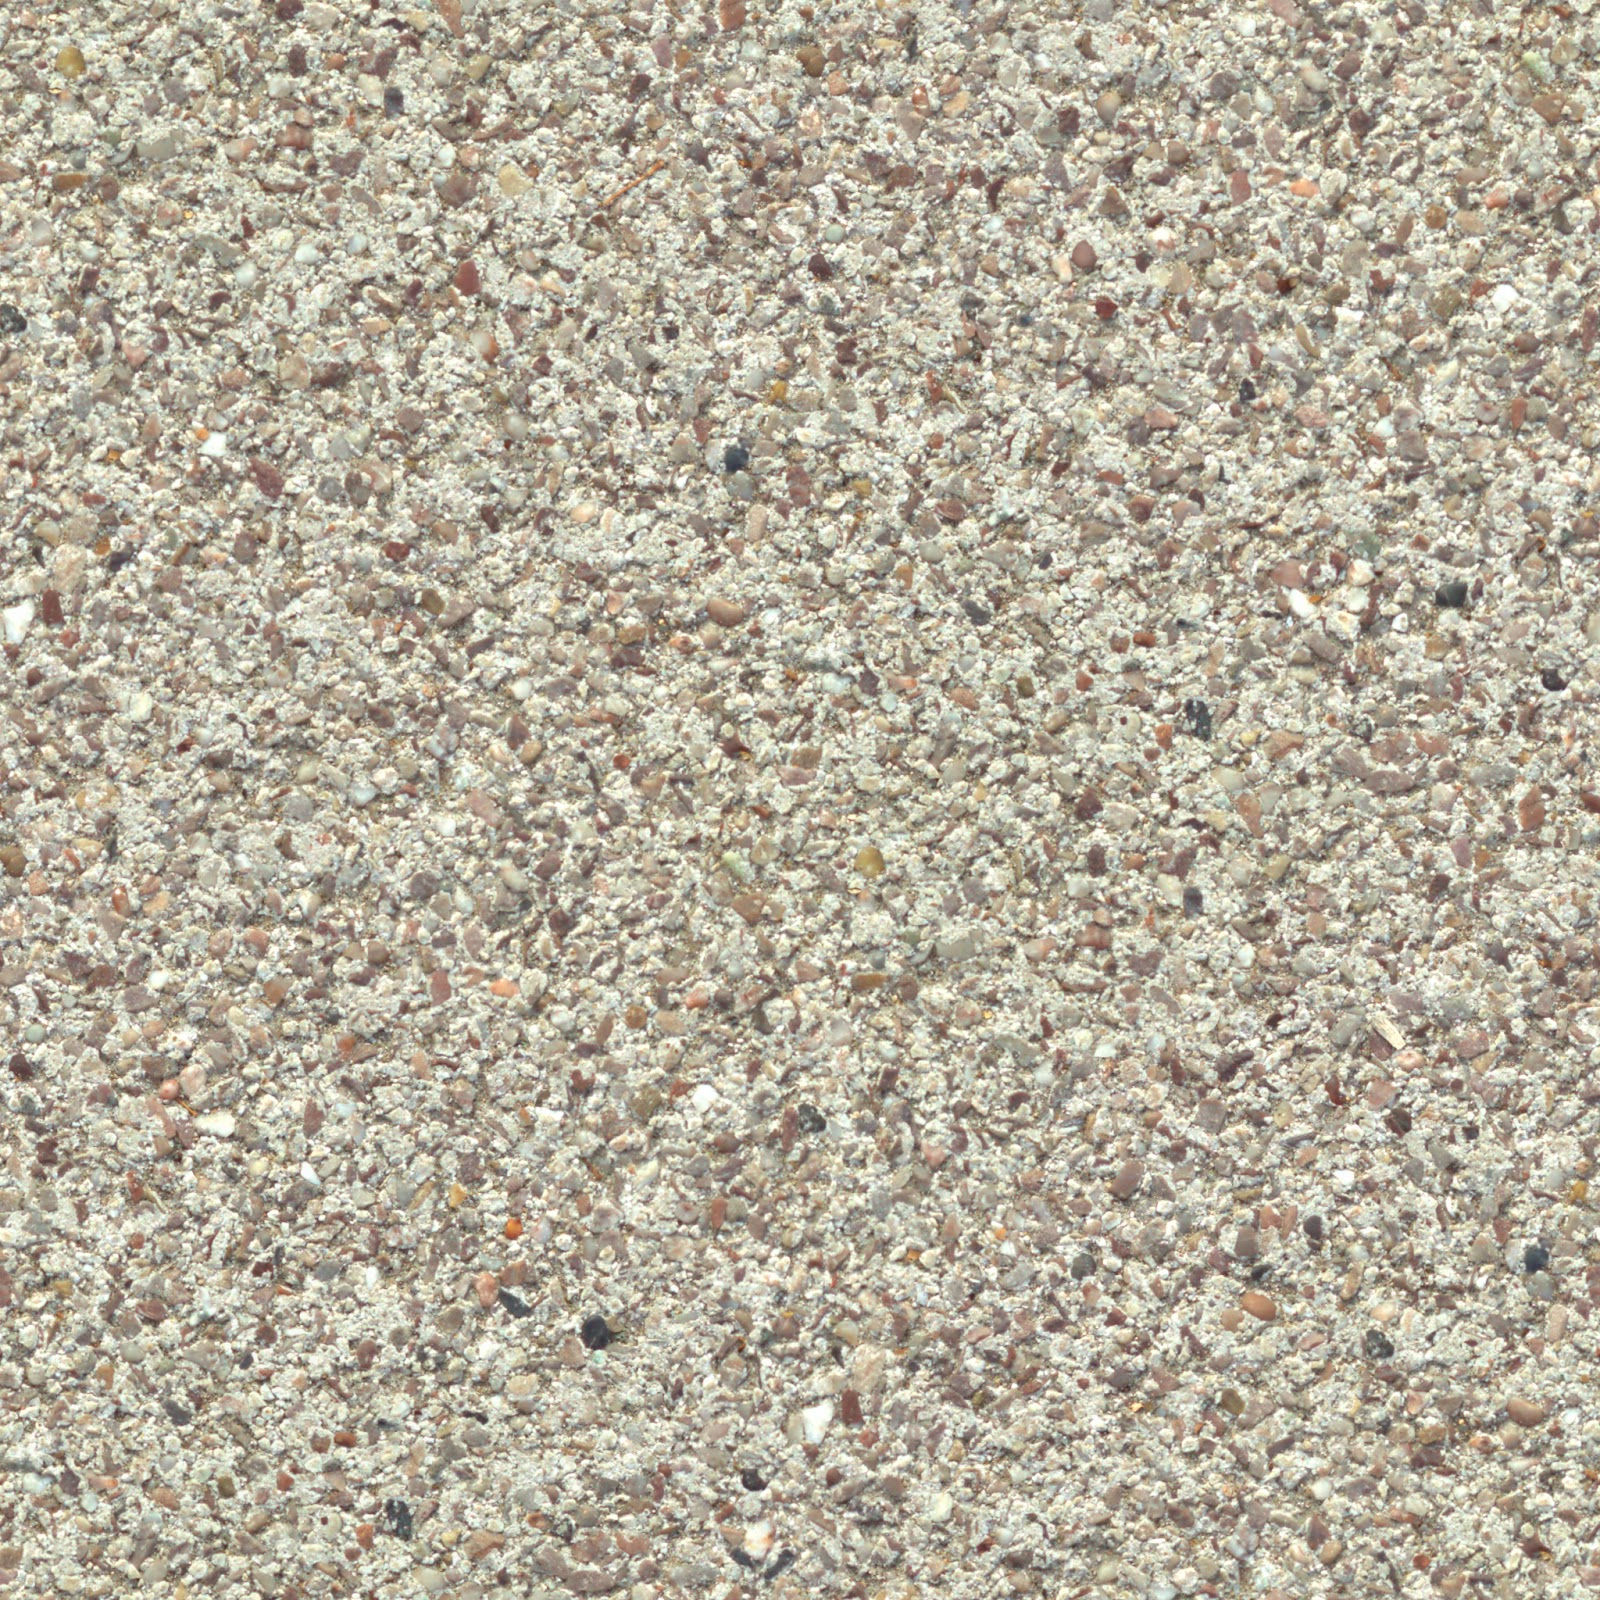 Concrete gravel floor coloured stones seamless texture 2048x2048